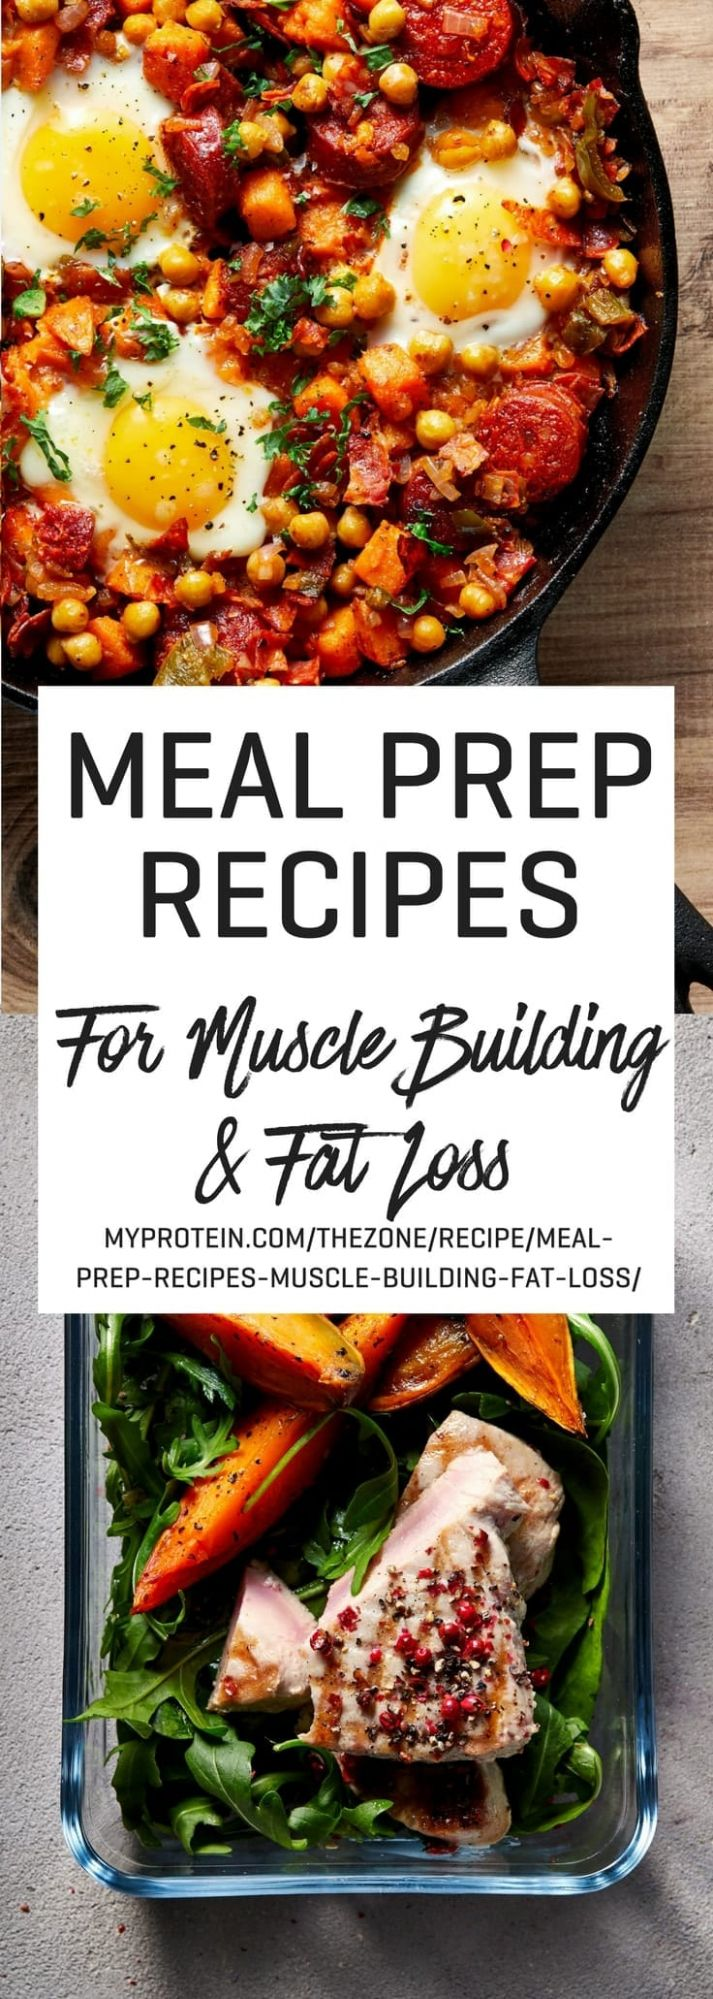 10 Meal Prep Recipes For Muscle Building & Fat Loss | MYPROTEIN™